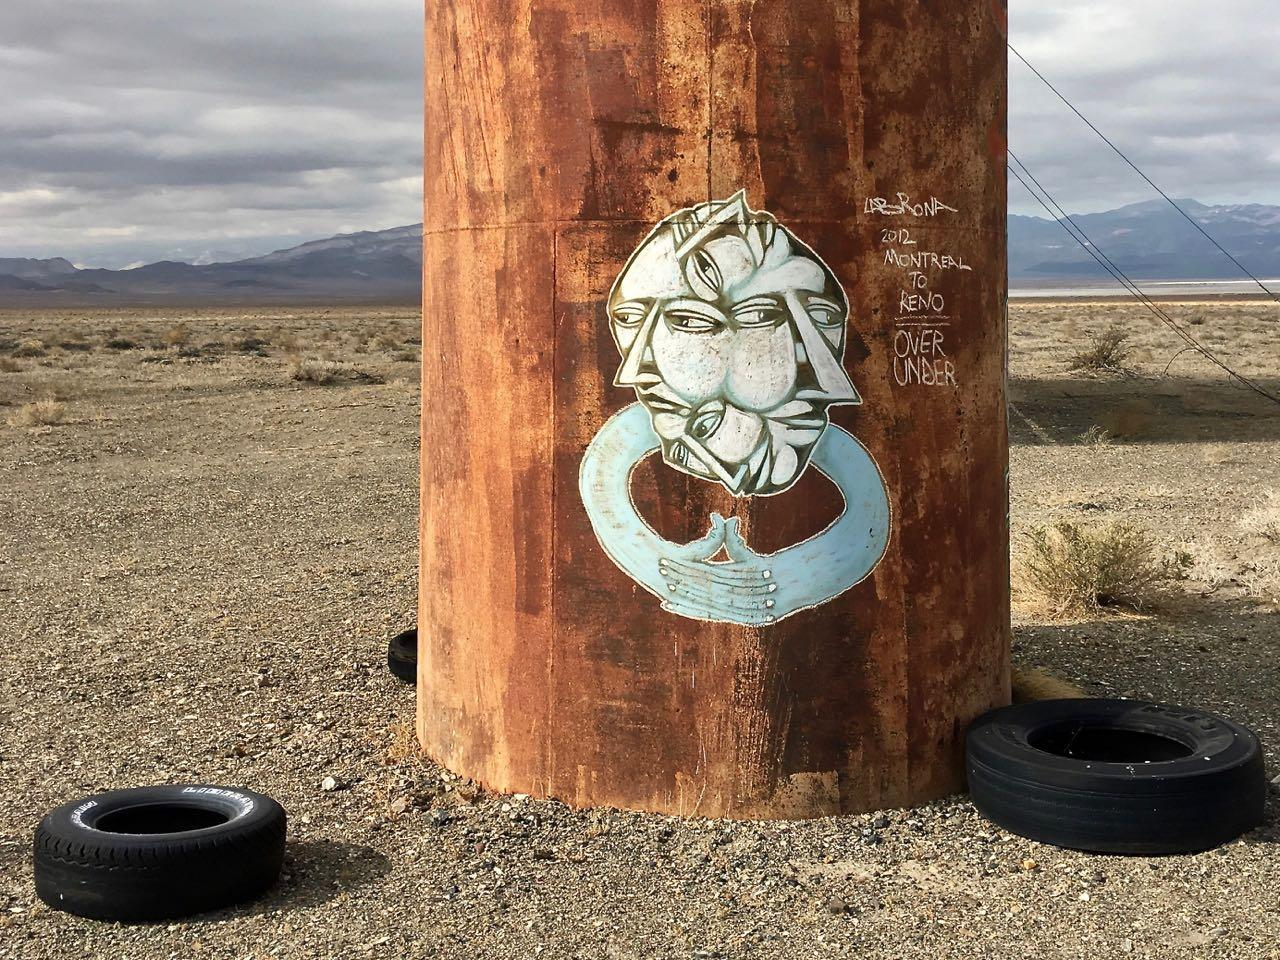 Nevada's eroded Coaldale - I Support Street ArtI Support